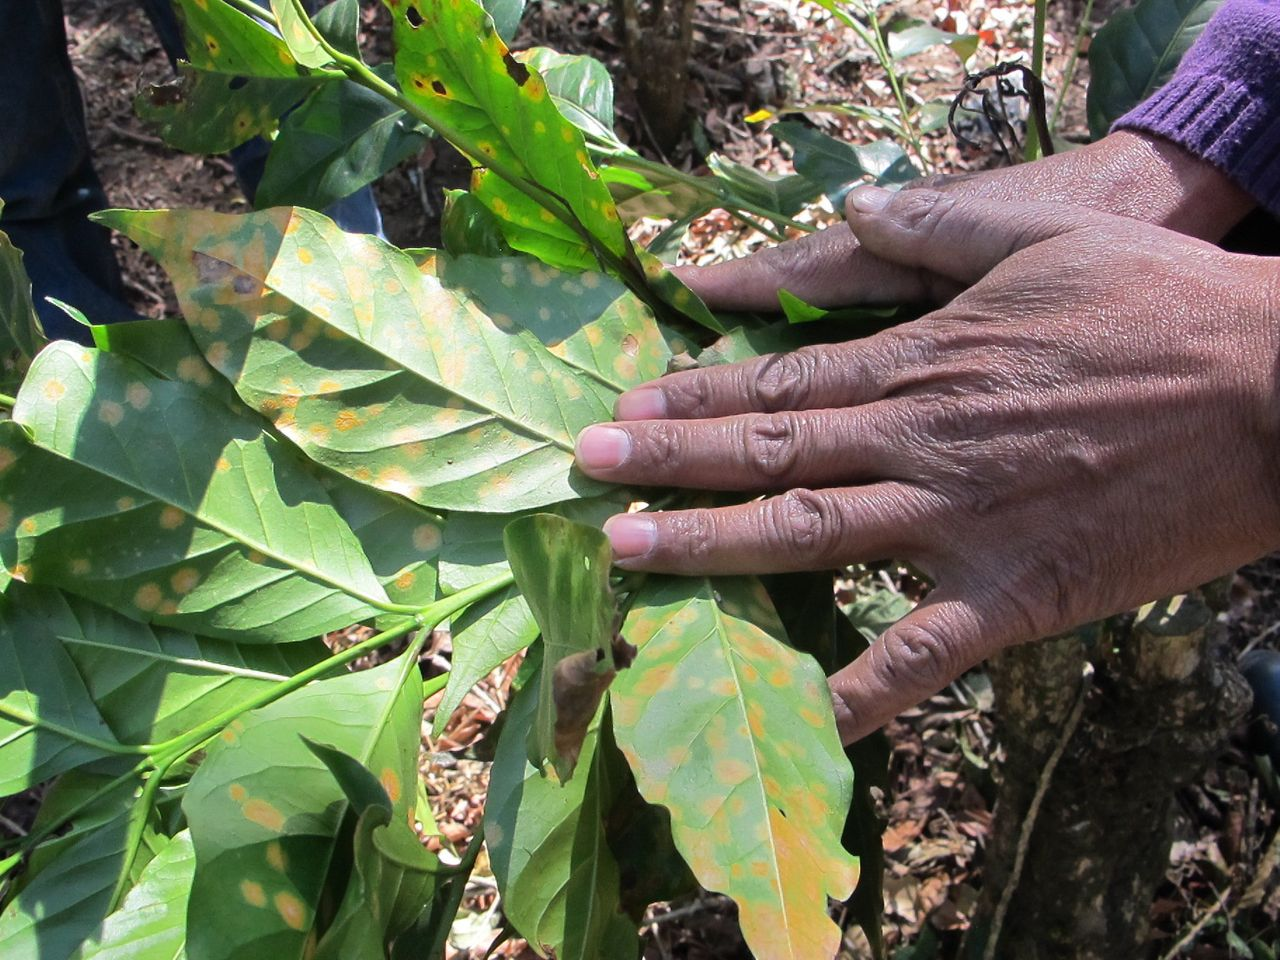 The early signs of coffee rust, a blight worsened by the impacts of climate change, on a coffee plant in Guatemala's dry corridor.